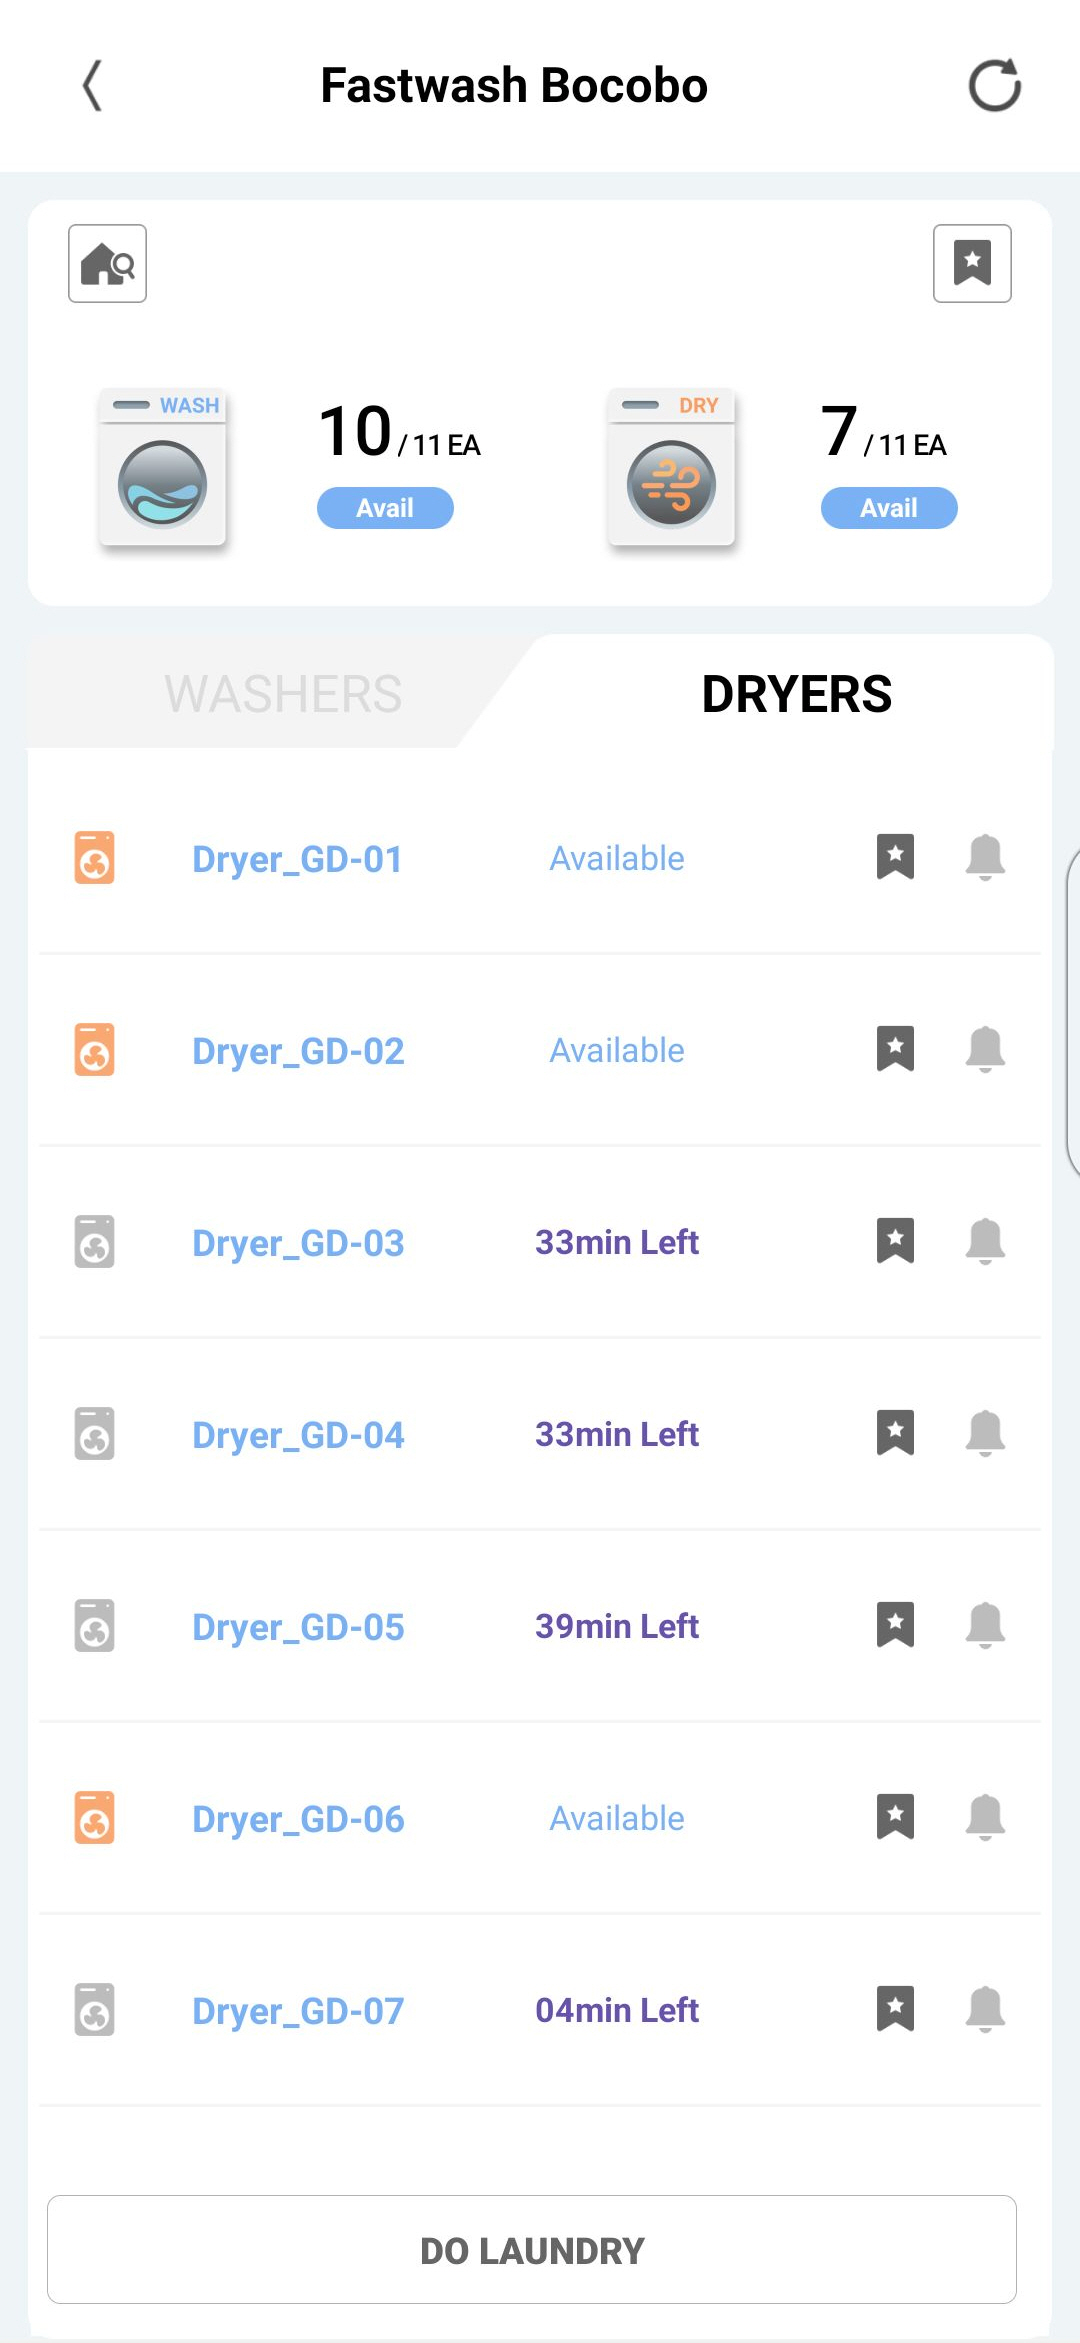 The Laundry Lounge app shows available washing machines and dryers while indicating waiting time for those being occupied.